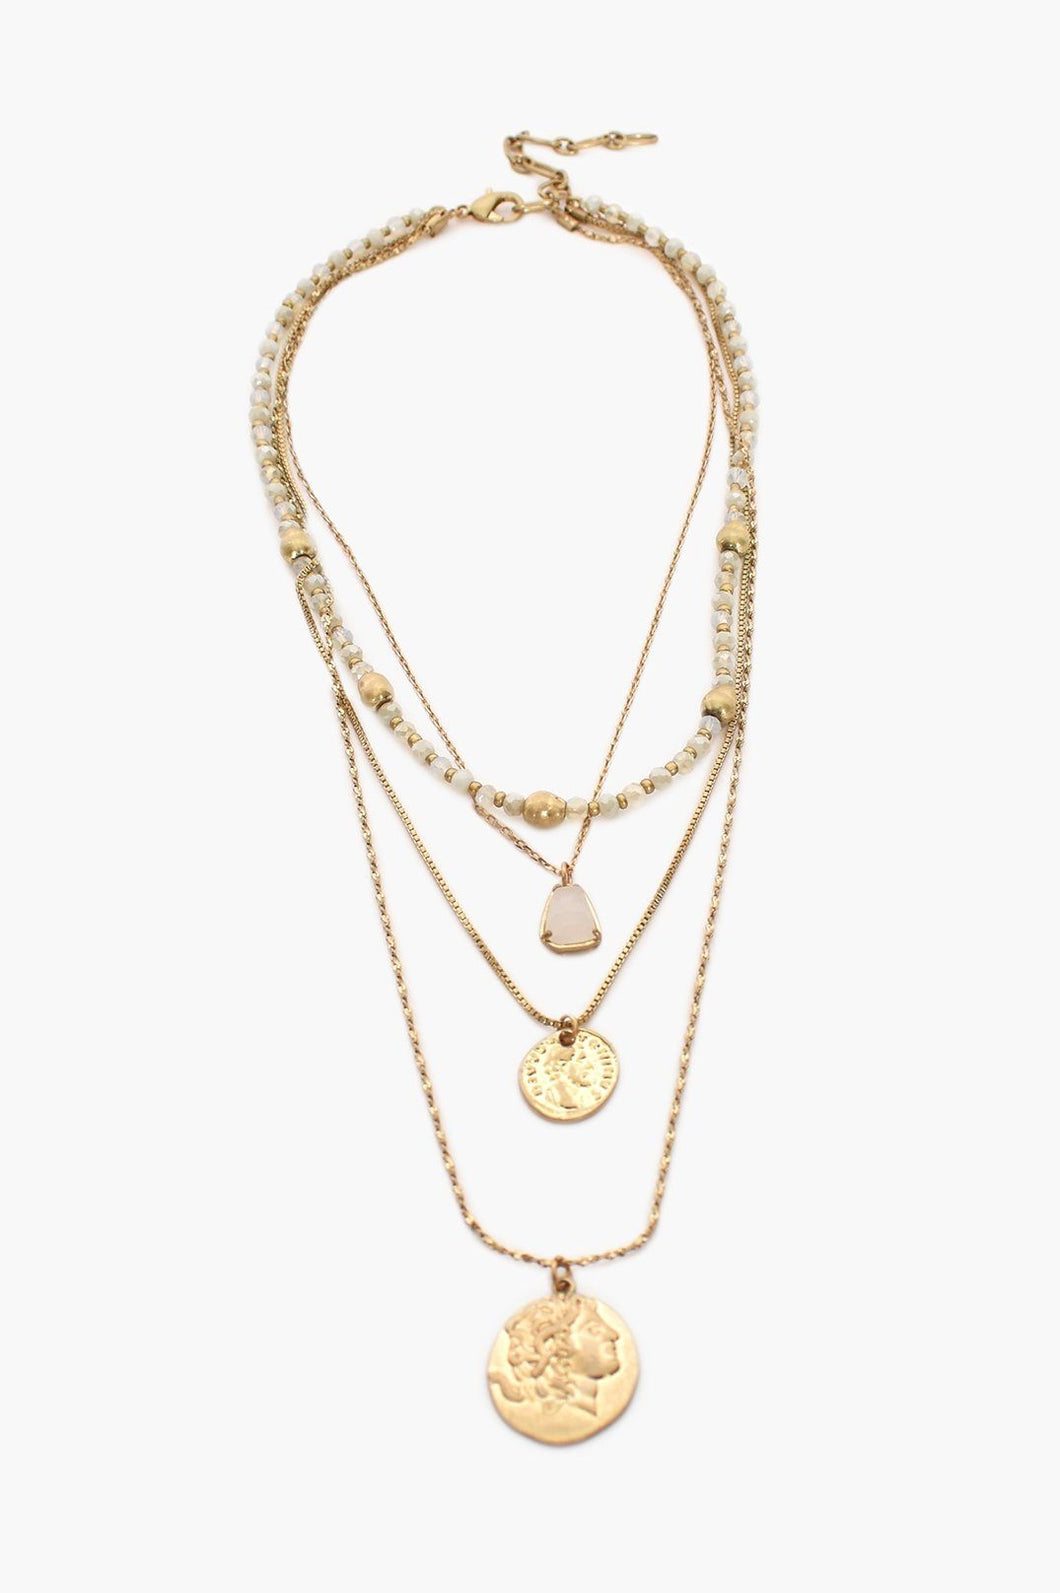 Adorne Sophie Stone Coin Layers Necklace White Gold - Global Free Style